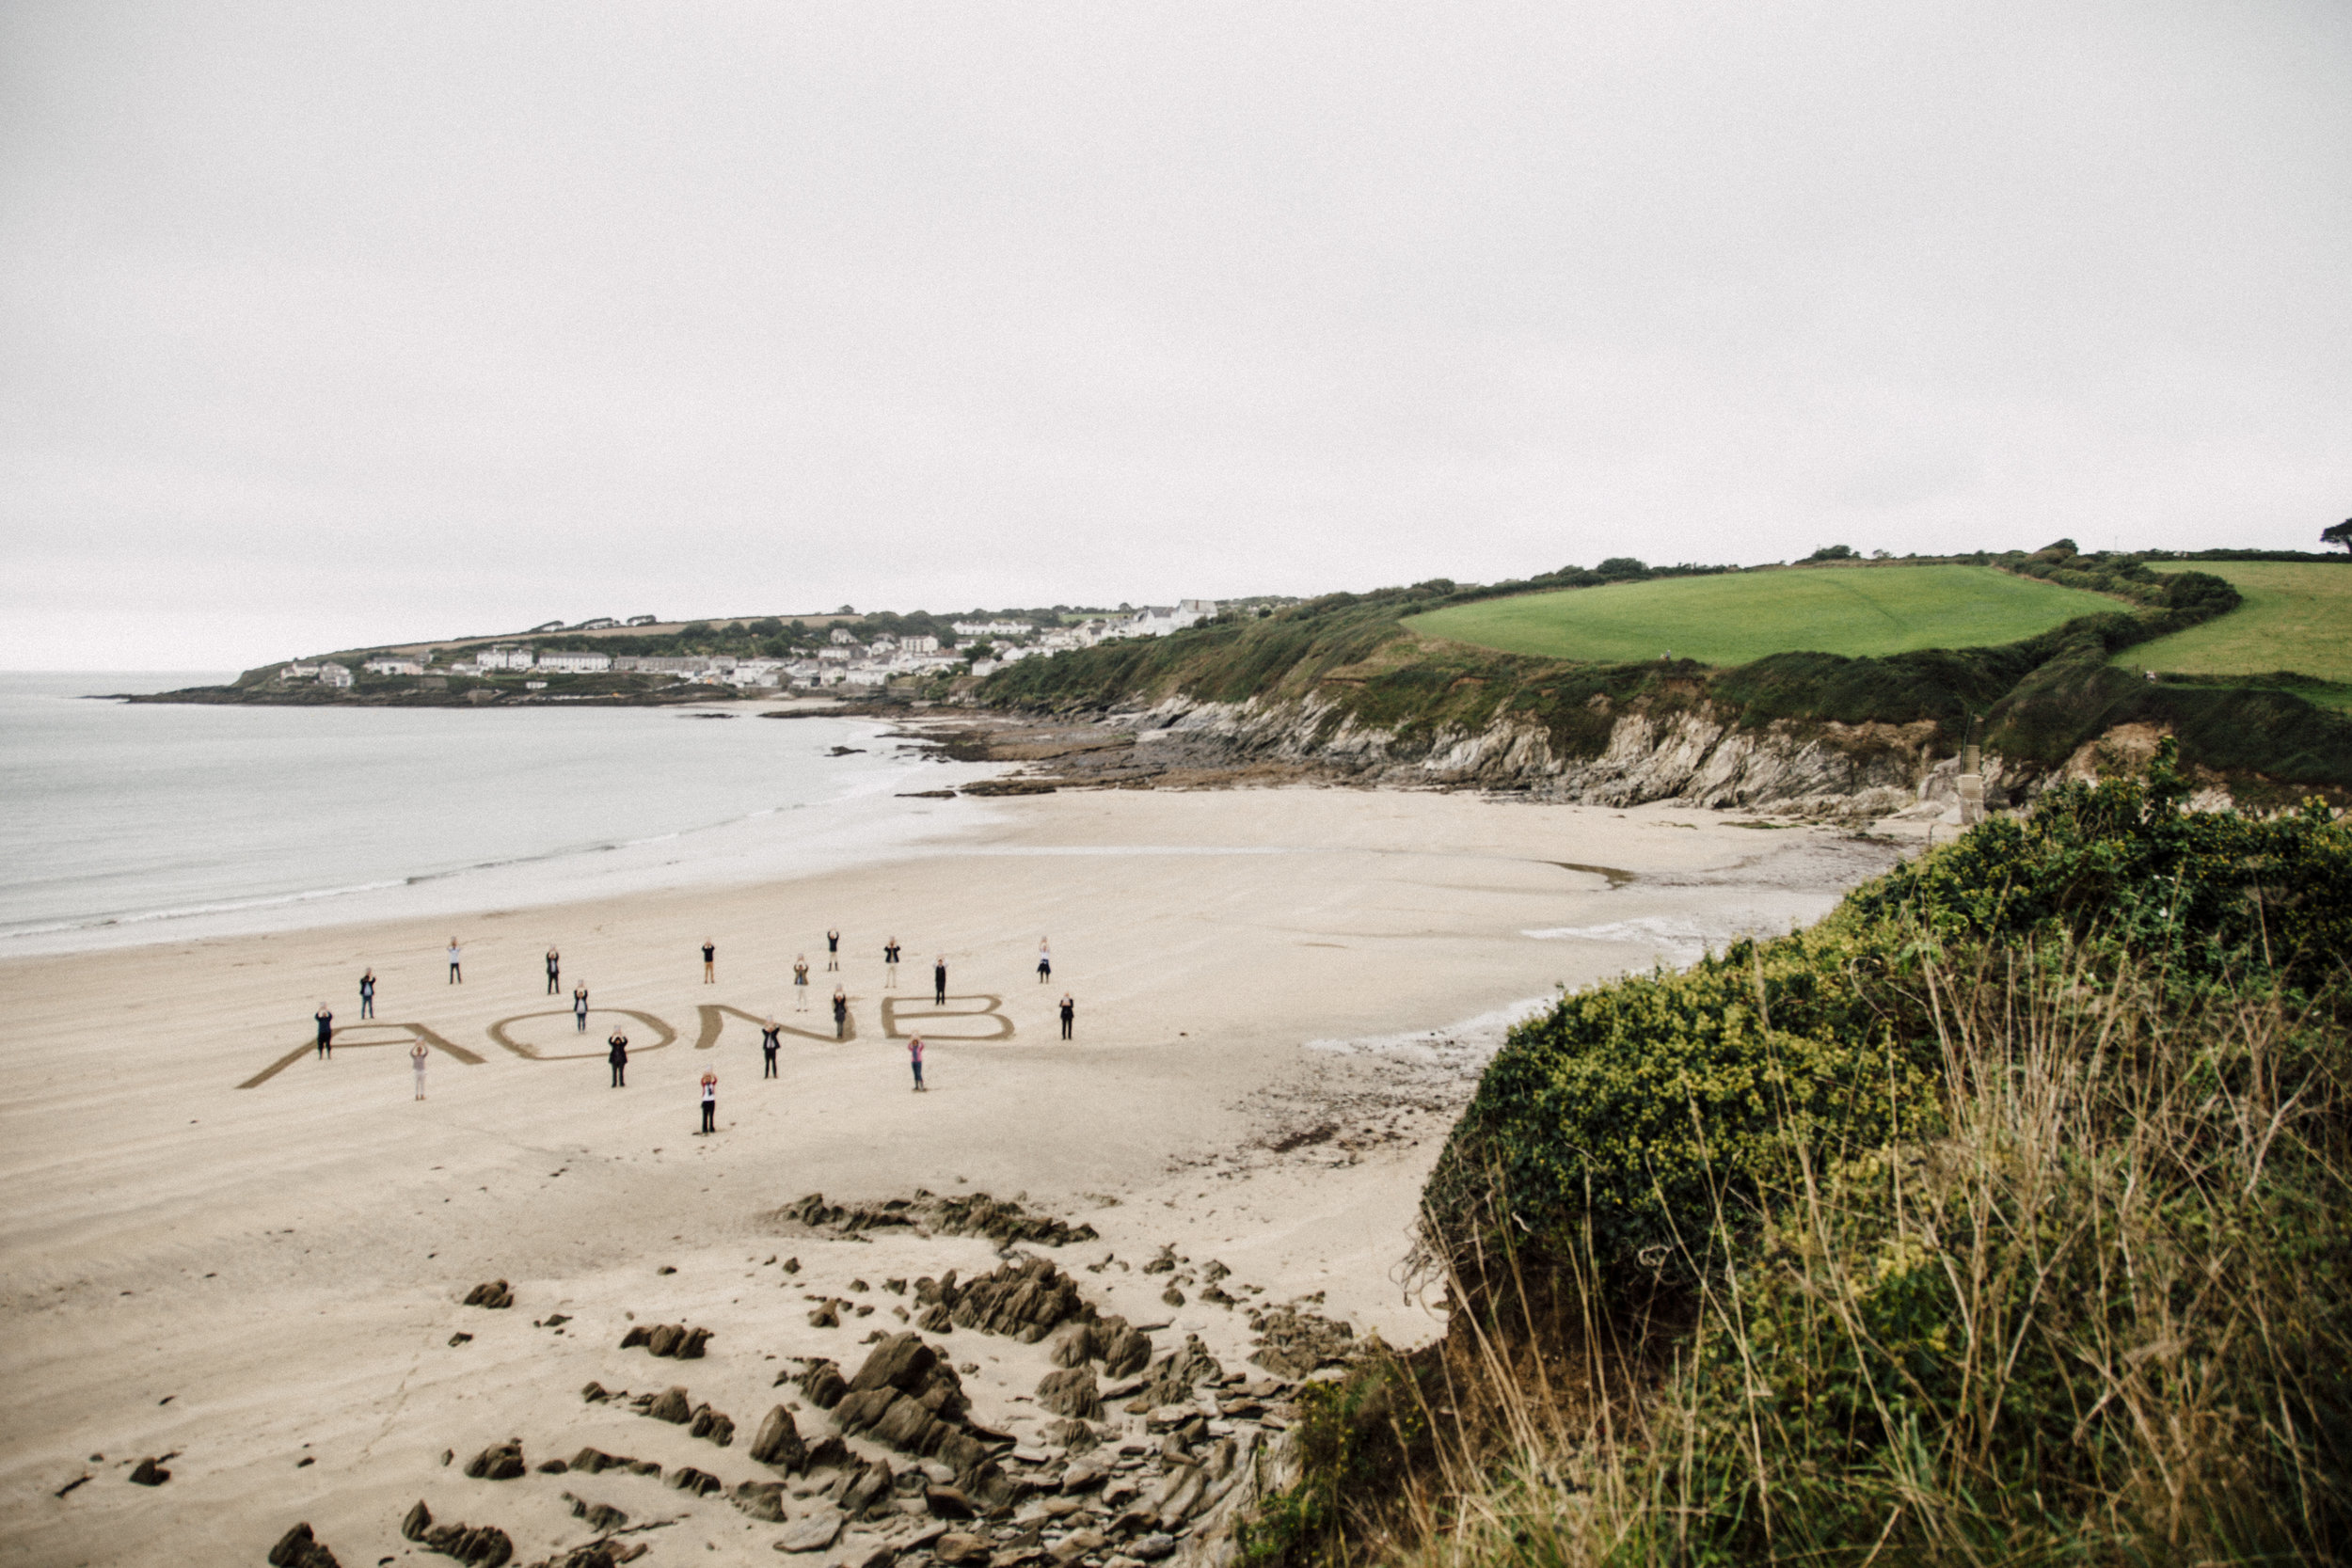 AONB Partners celebrate the Management Plan launch at Porthcurnick beach - all images by Emma Coster.